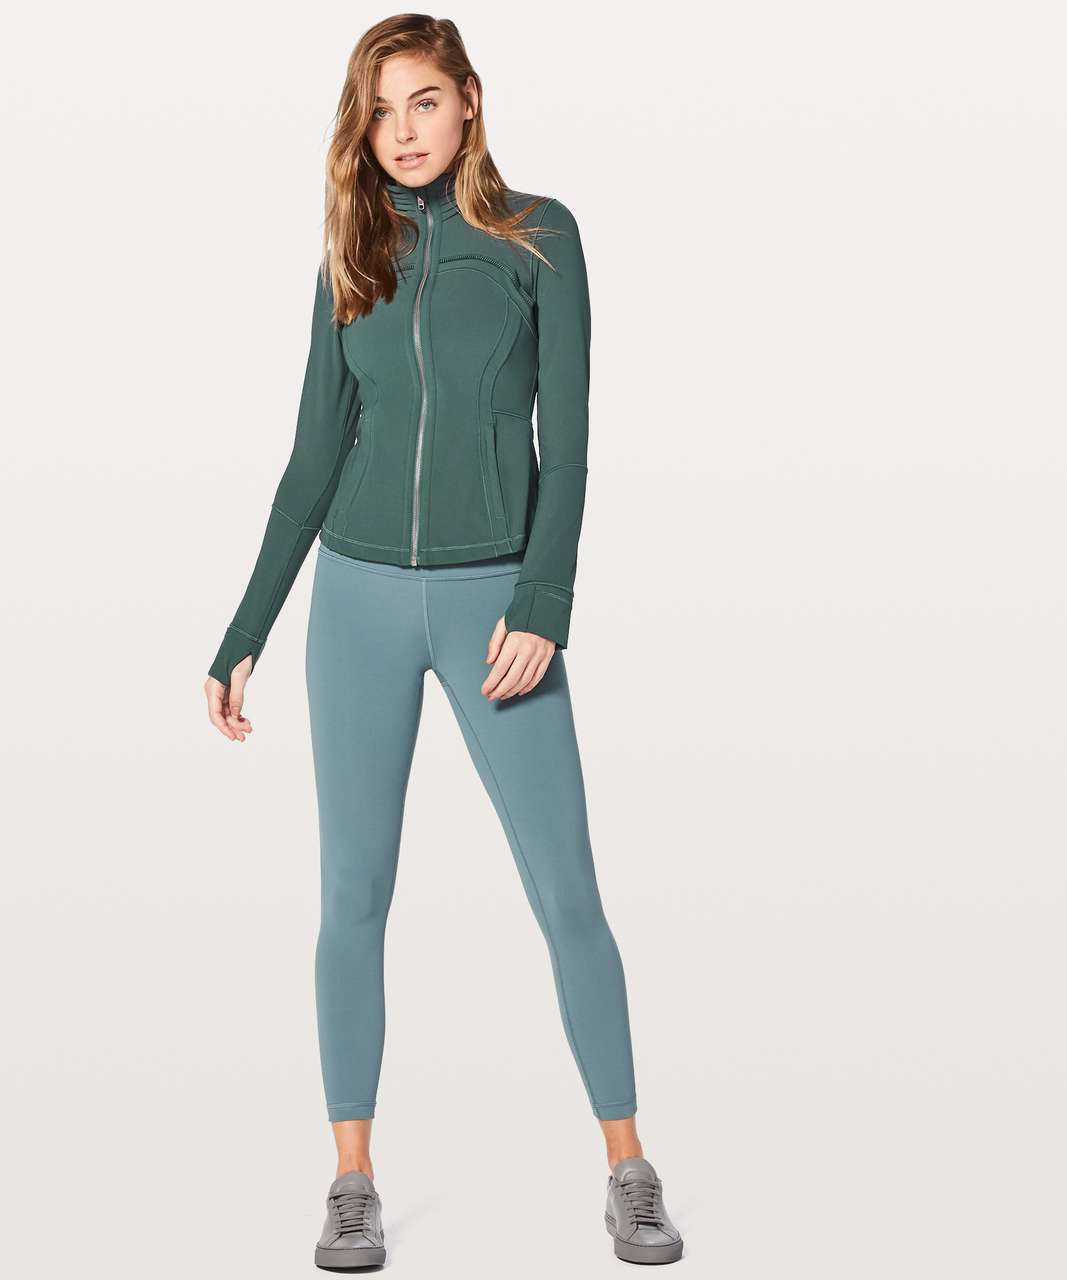 Lululemon Define Jacket Special Edition - Teal Shadow